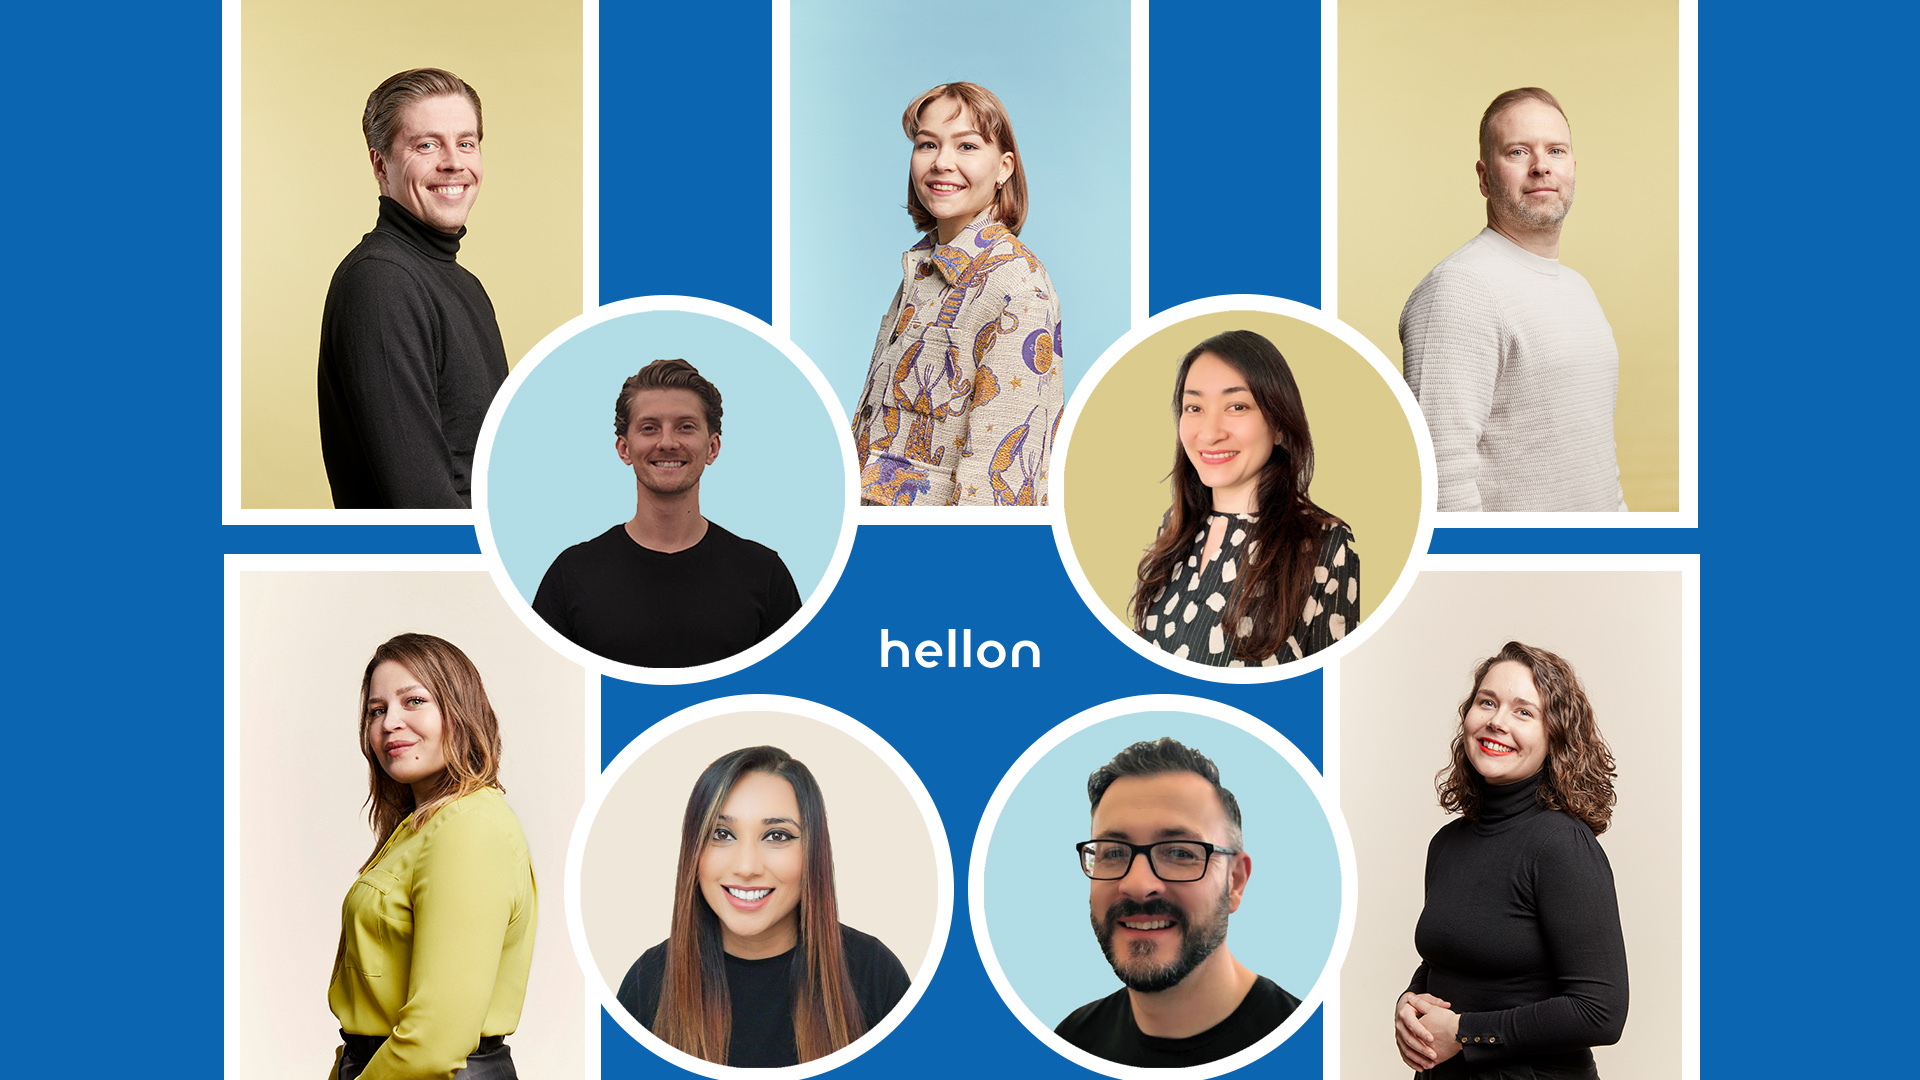 Hellon team is growing – COVID Put Customer Experience at the Top of C-Suite Leaders' Agenda